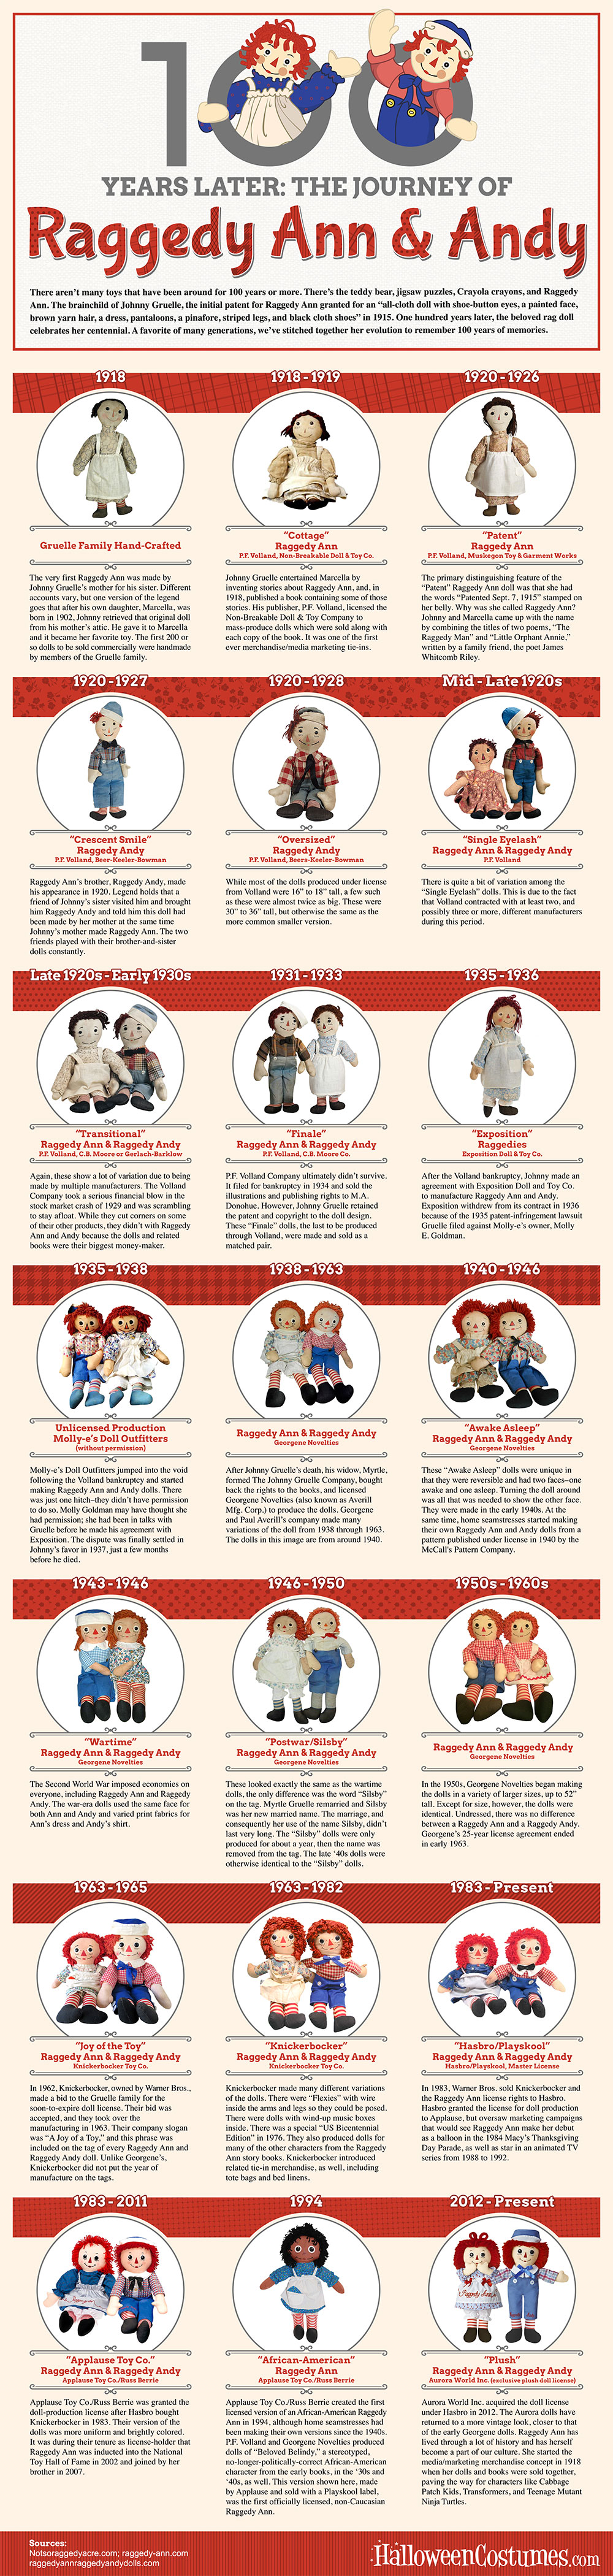 Raggedy-Ann-Evolution-Infographic.jpg (1000×4201)